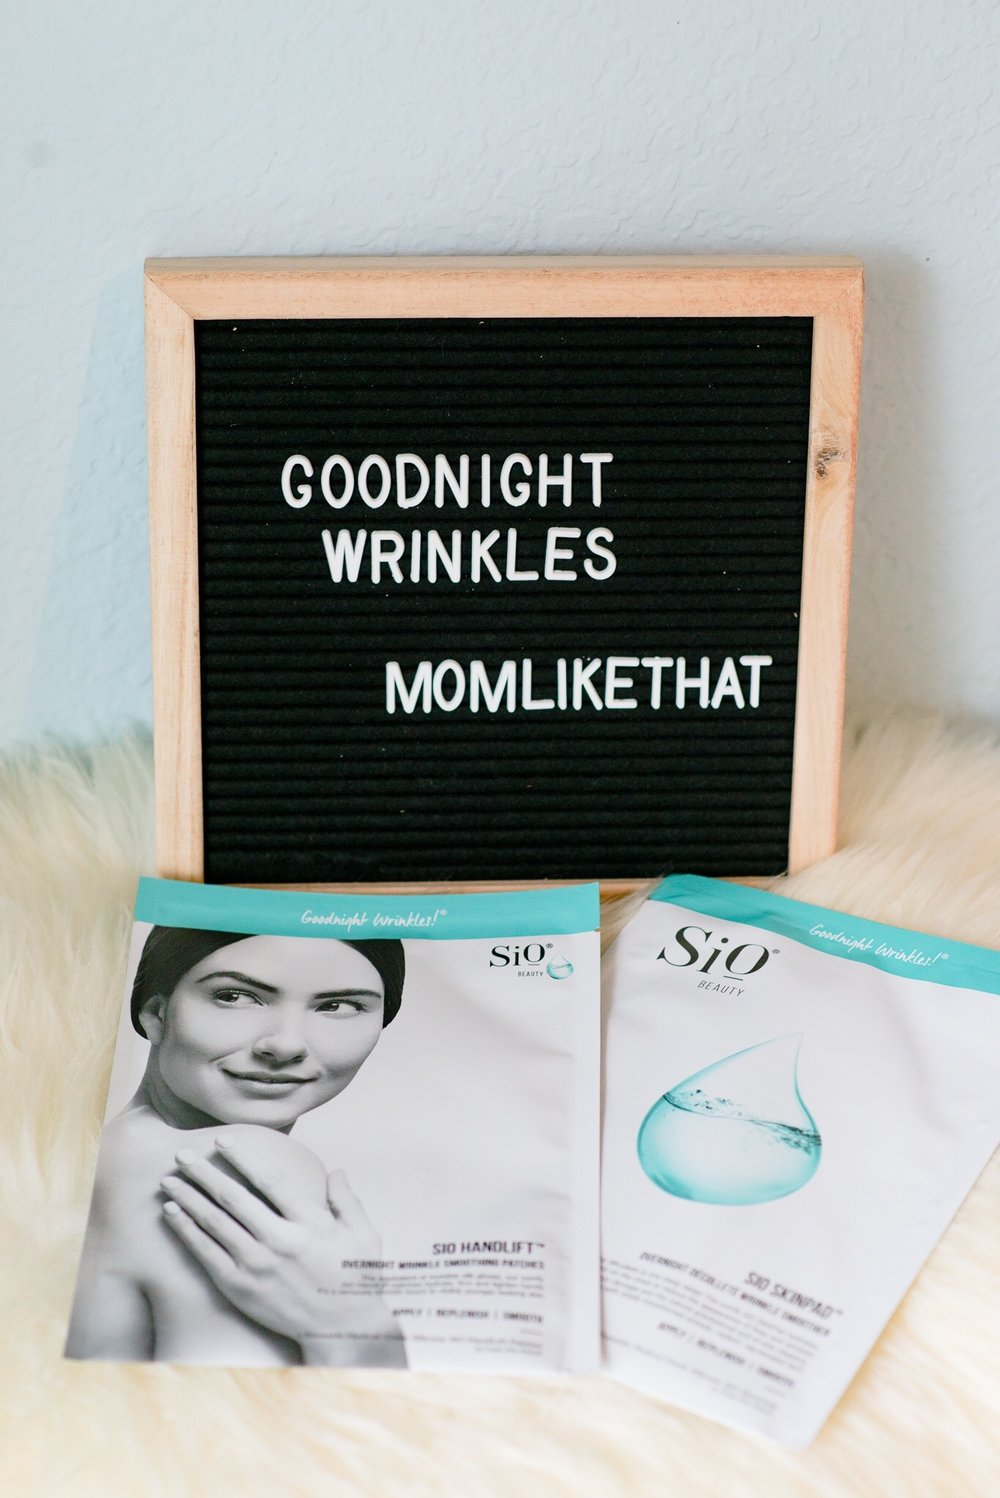 momlikethat siobeautypatches02.JPG